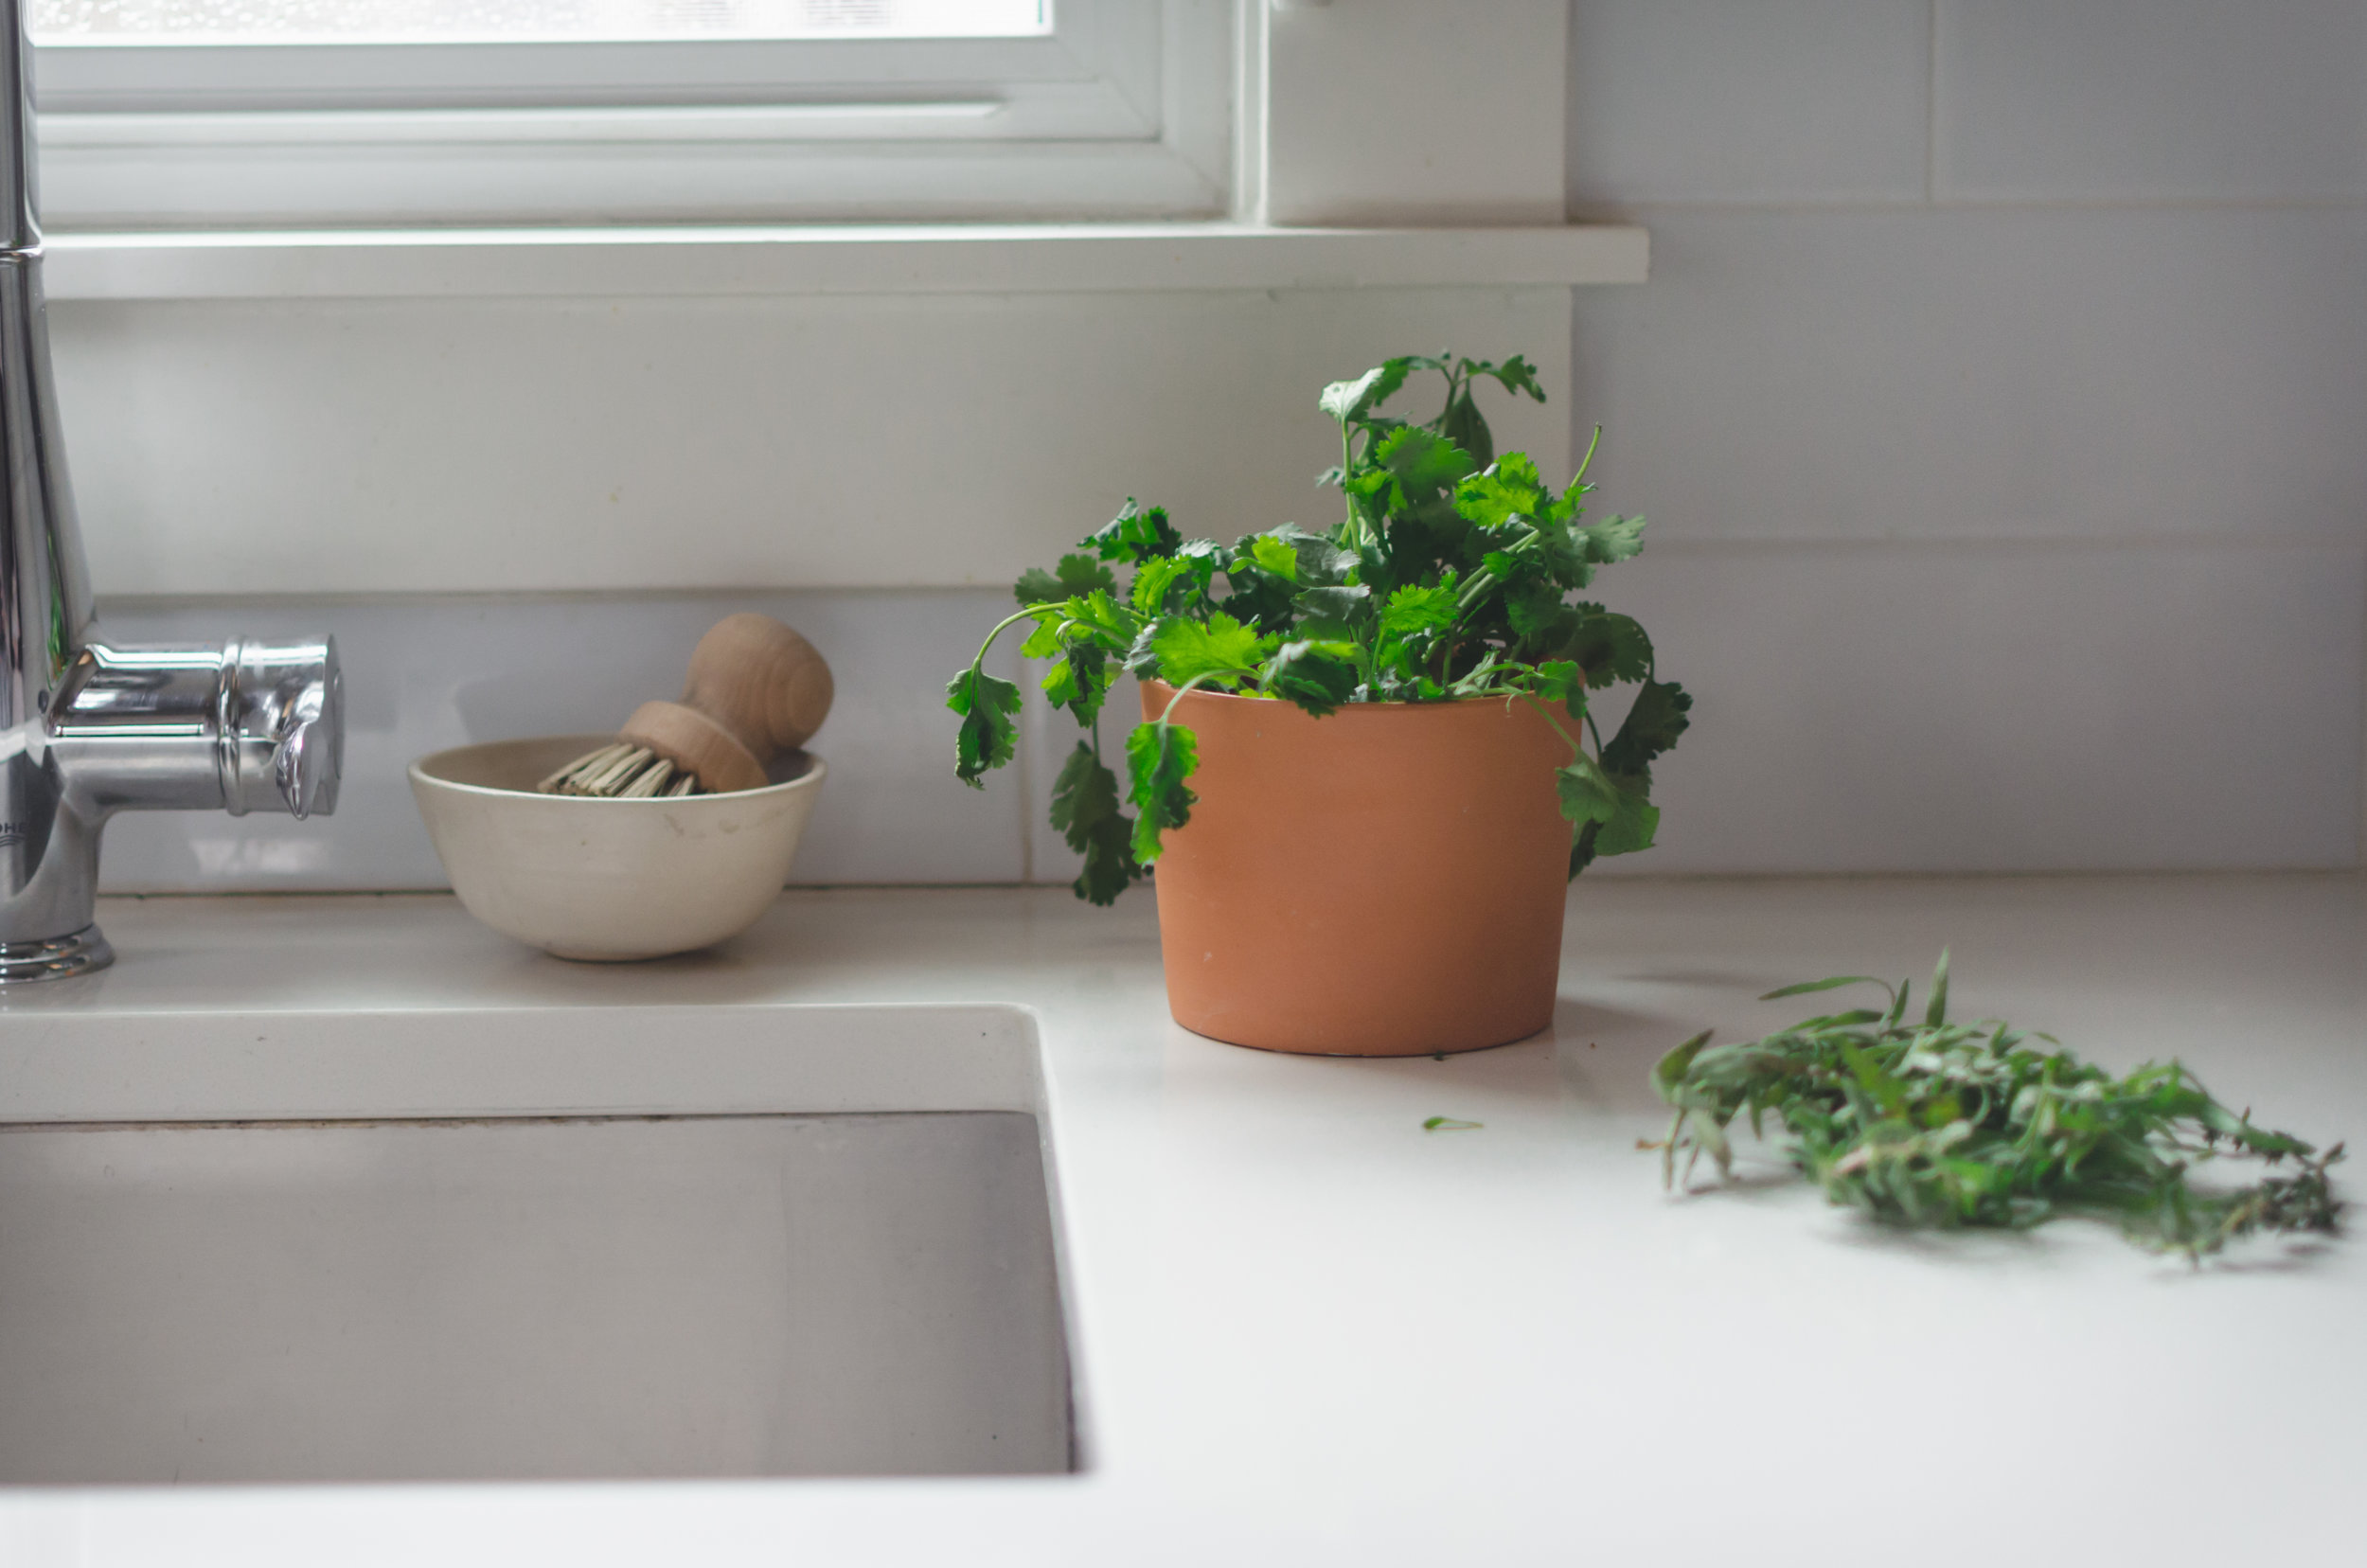 6. Grow your own herbs - Parsley, chives and cilantro are staples and growing them in at home is relatively easy! You'll save money and avoid wasting unused store-bought herbs.